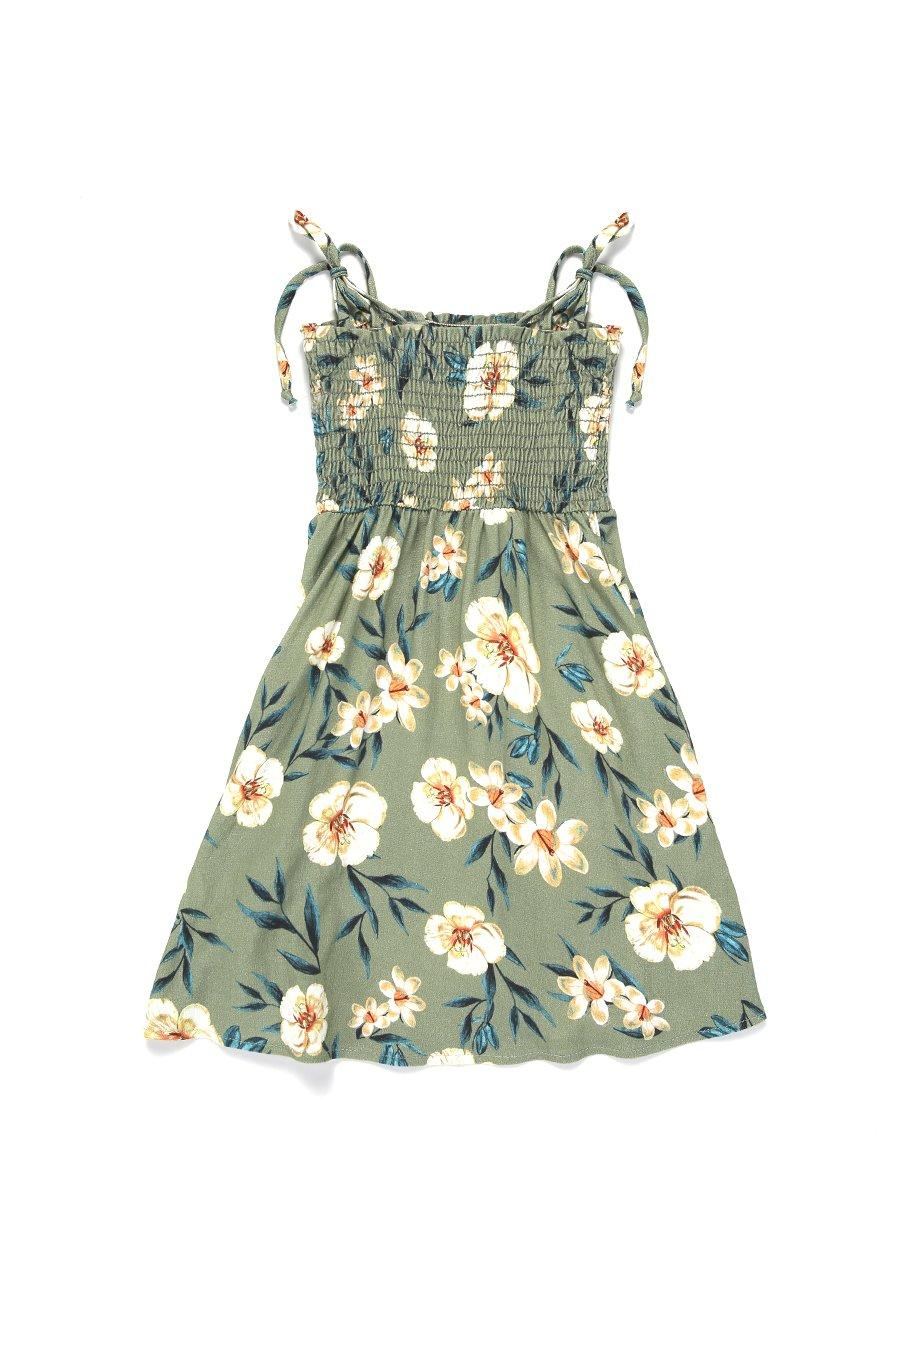 Girls Capri Dress - Green Floral